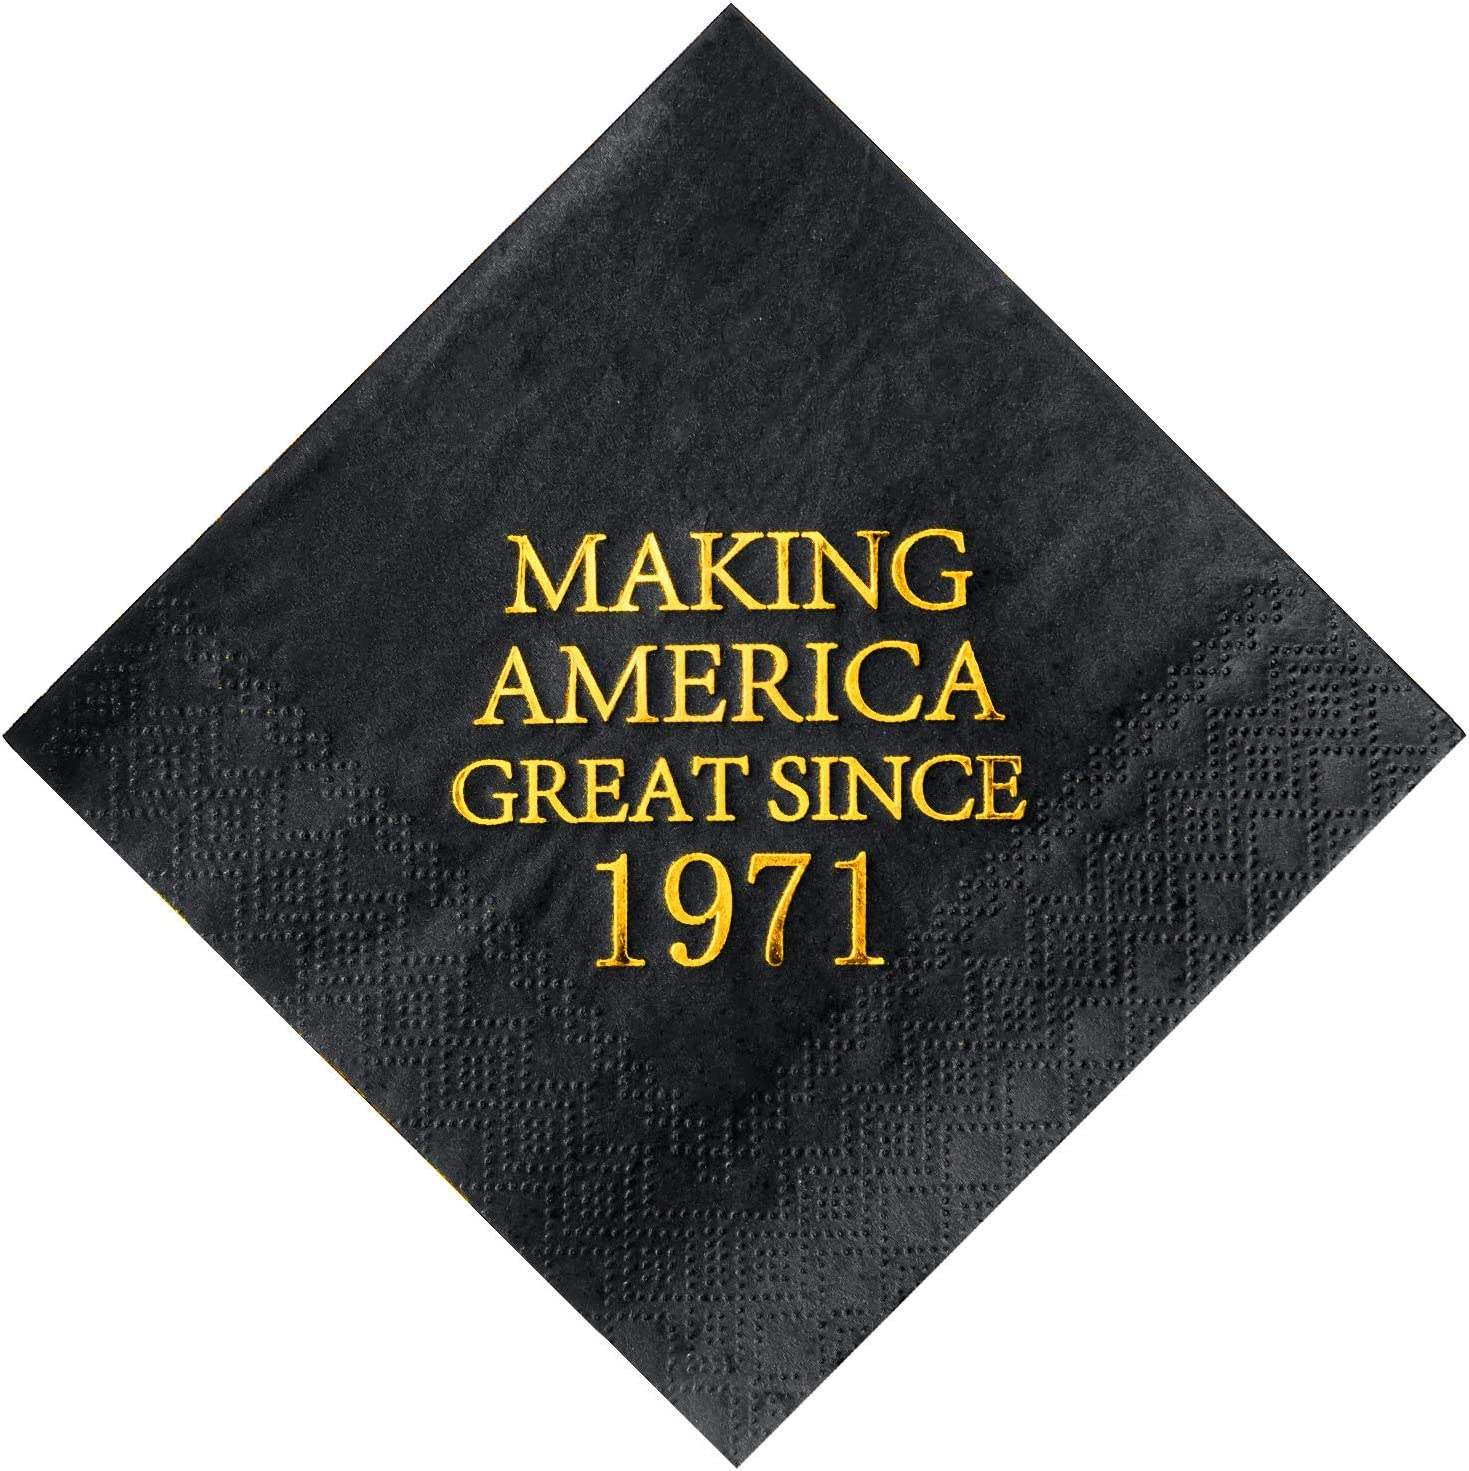 Crisky 50th Birthday Disposabel Napkins Black and Gold Dessert Beverage Cocktail Cake Napkins 50th Birthday Decoration Party Supplies for Man Making Great Since 1971, 50 Pack 4.9